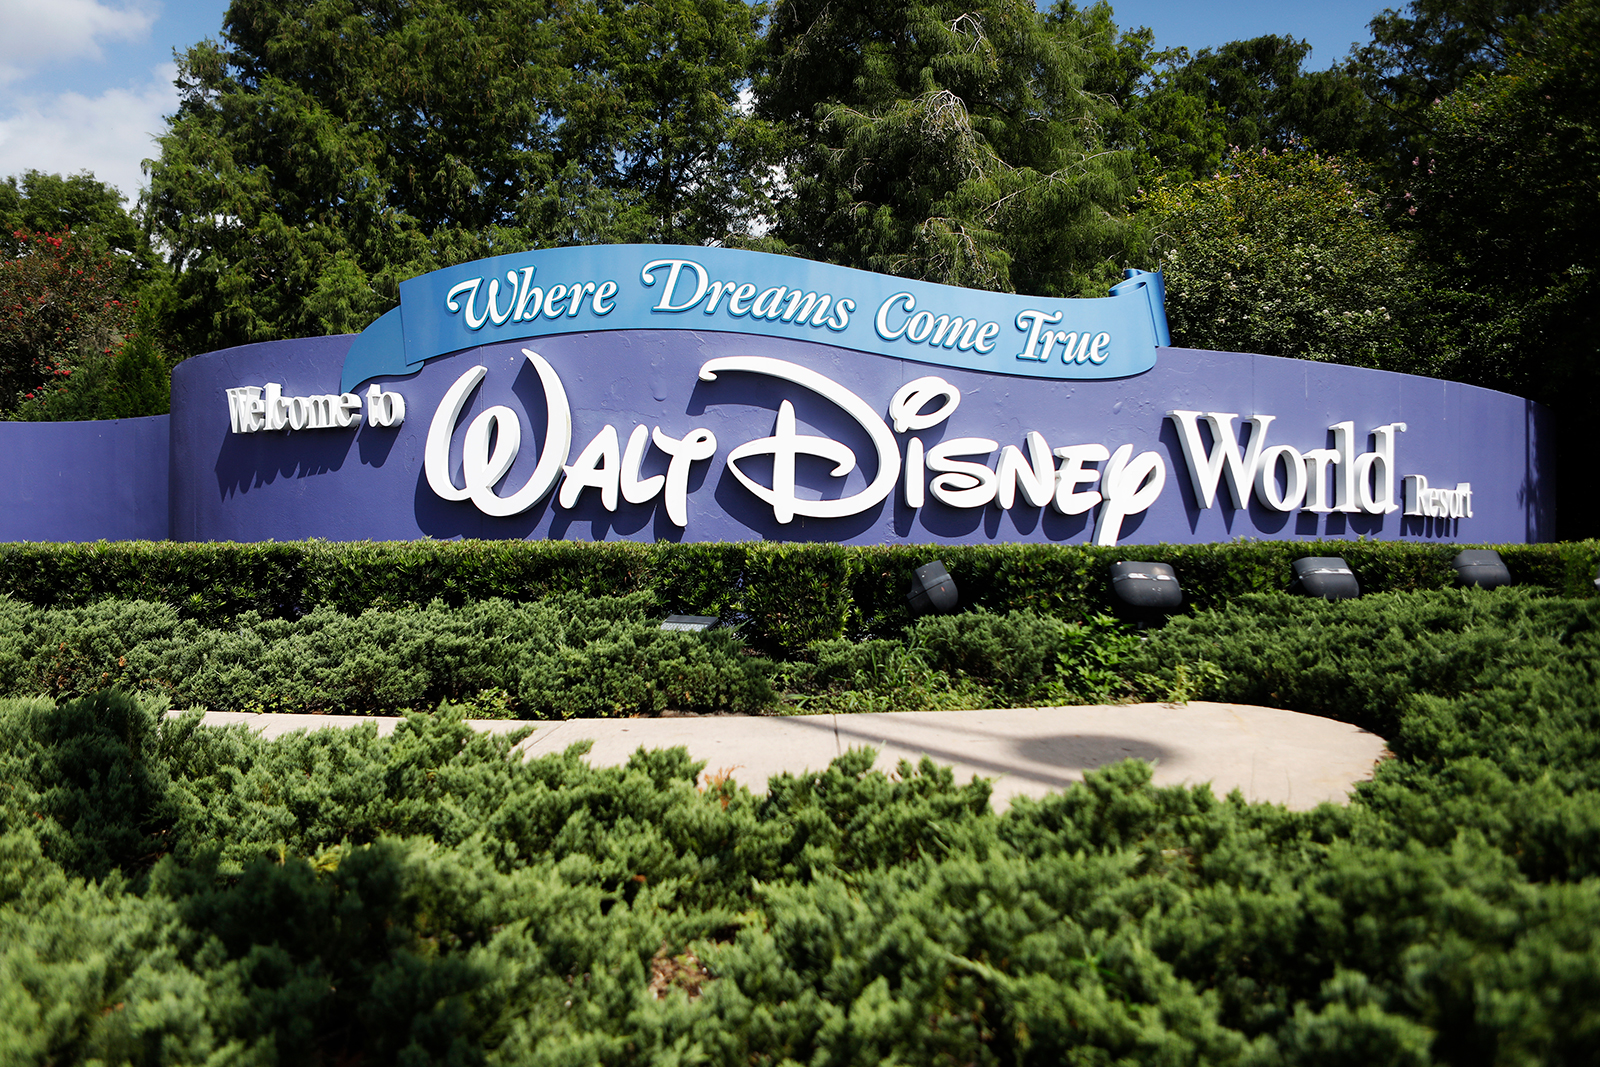 A view of the Walt Disney World theme park entrance in Lake Buena Vista, Florida on July 9.